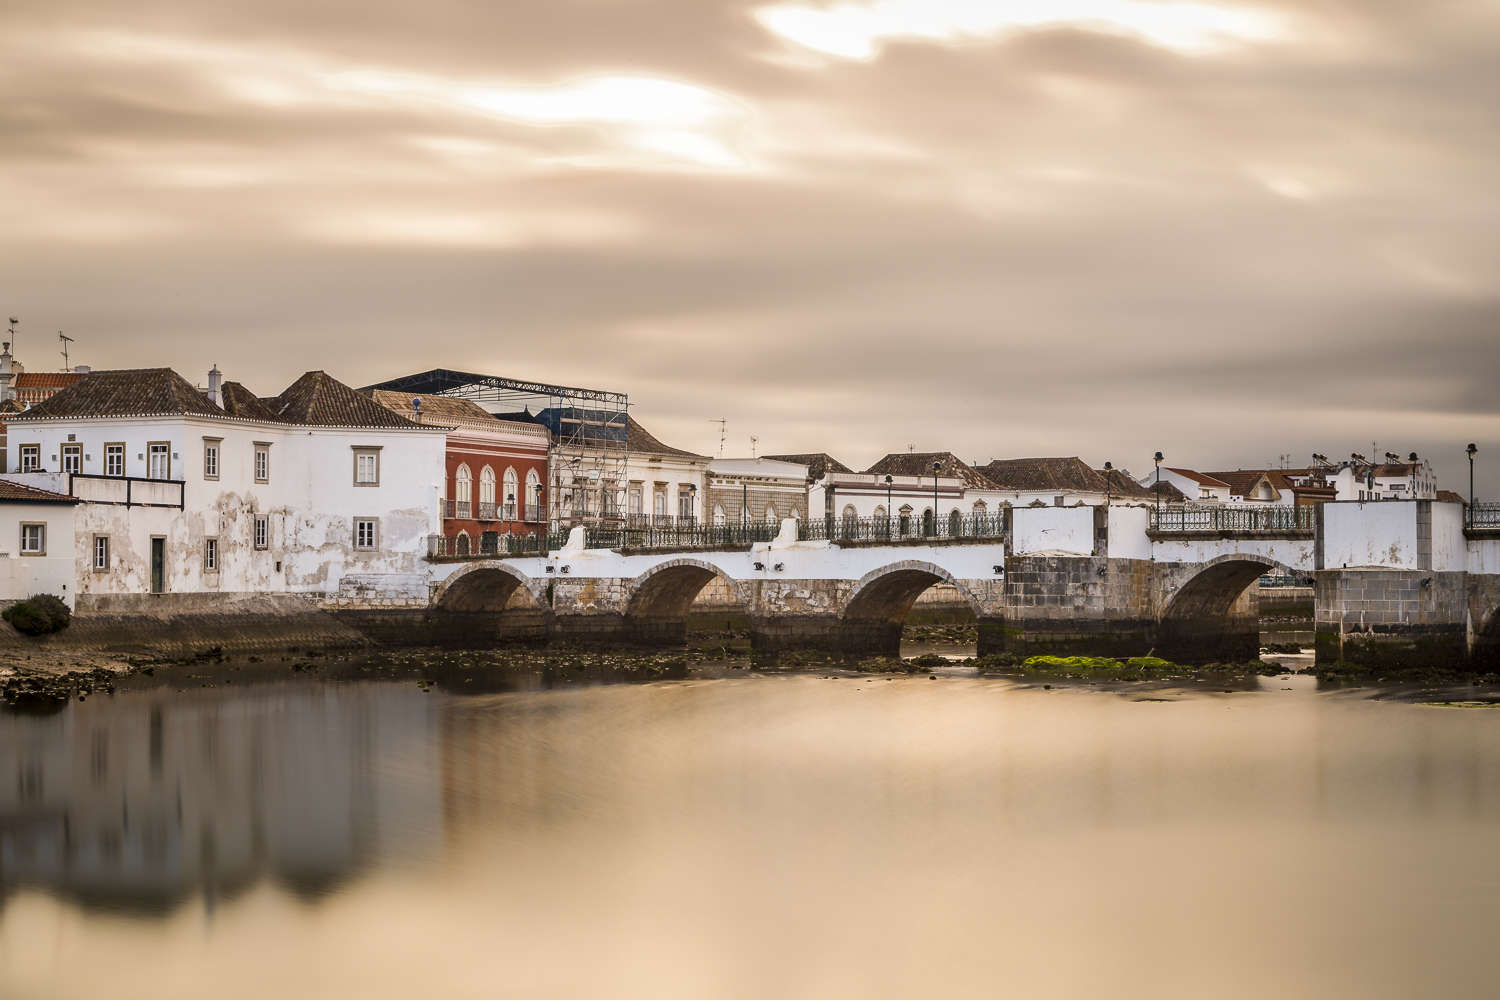 The super cute town of Tavira, the Algarve, Portugal.